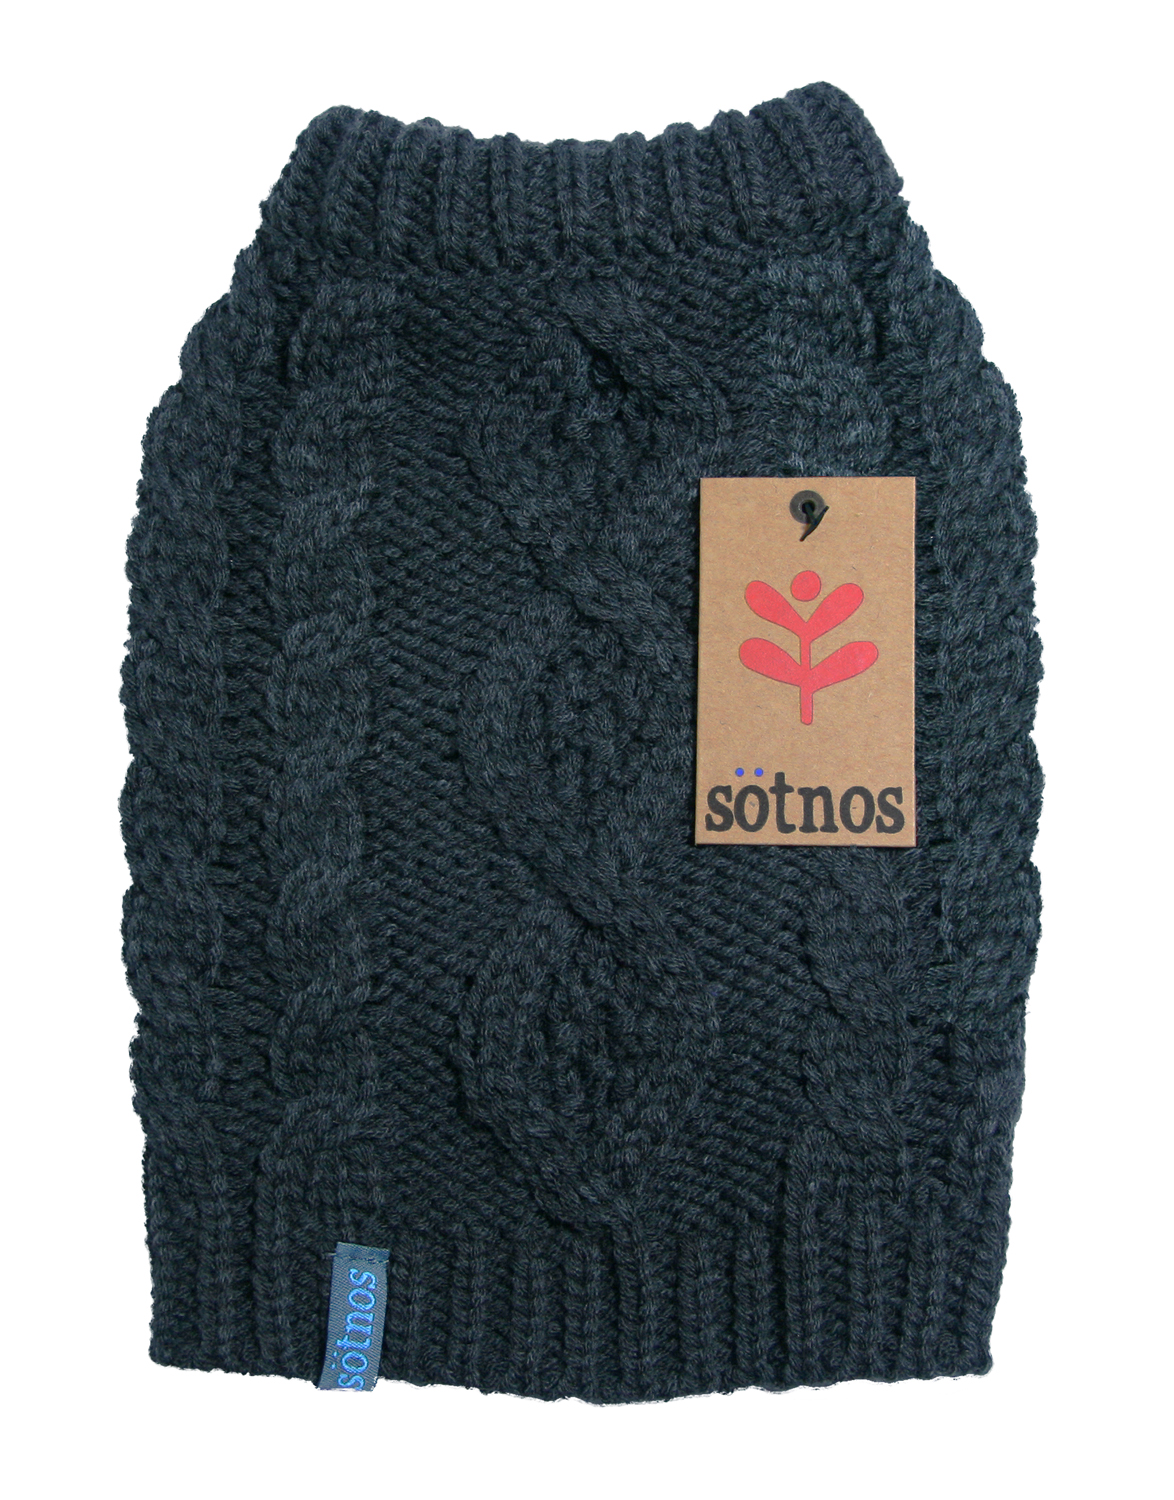 Sötnos Chunky Cable Knit Sweater